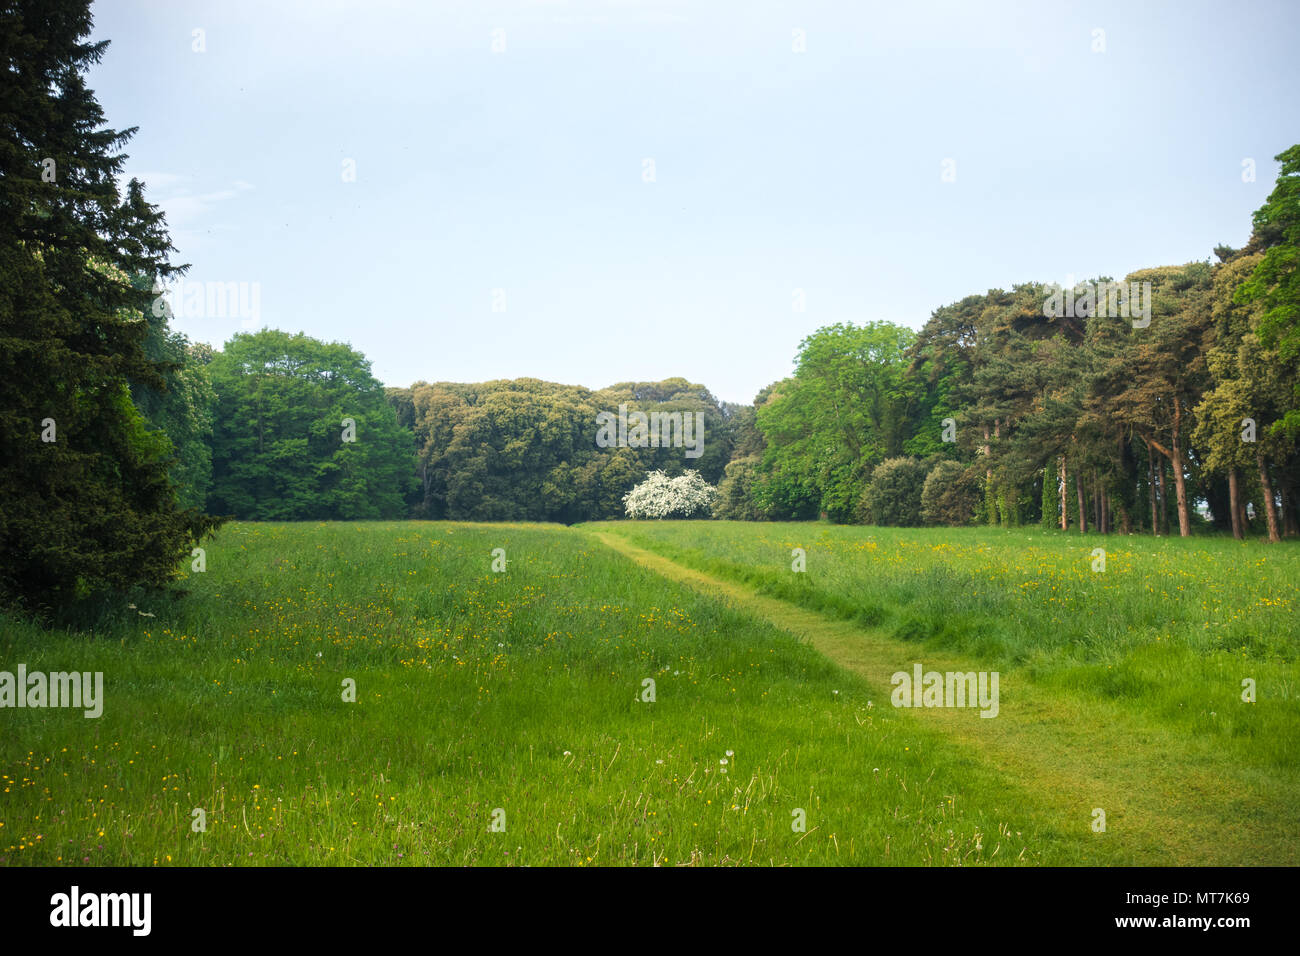 Green trees in the backgraound at park in IrelandStock Photo